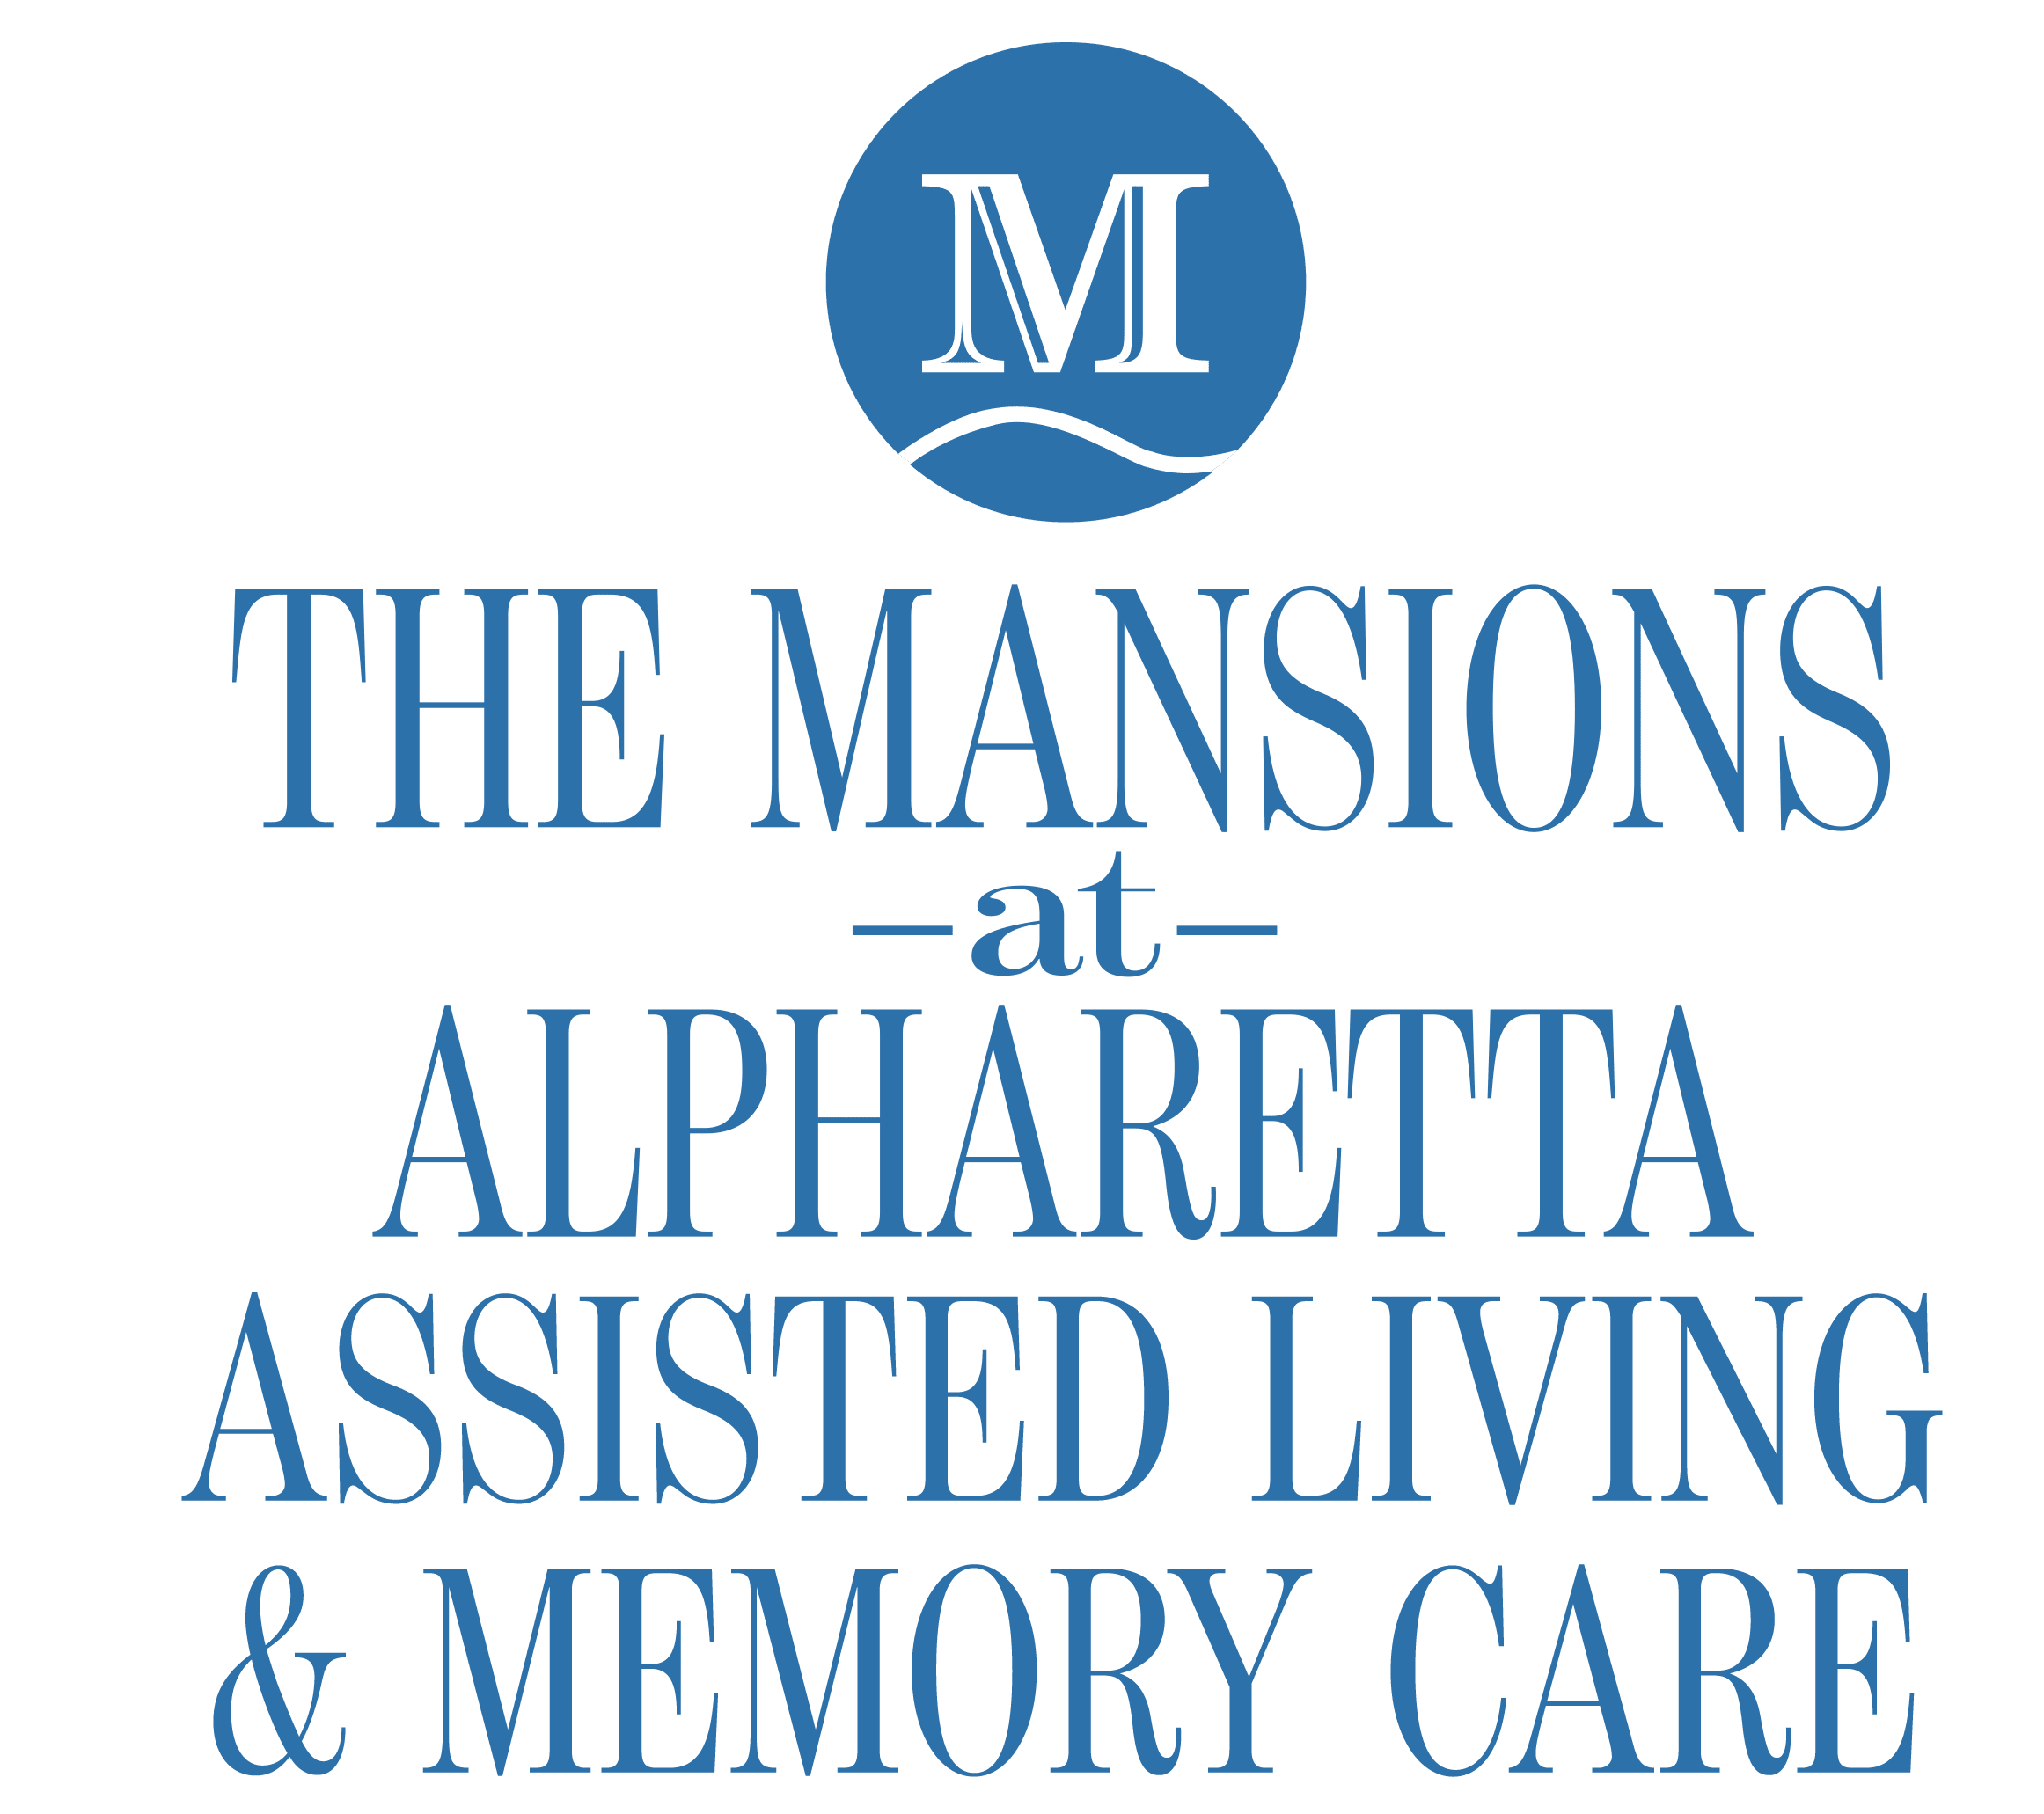 The Mansions at Alpharetta